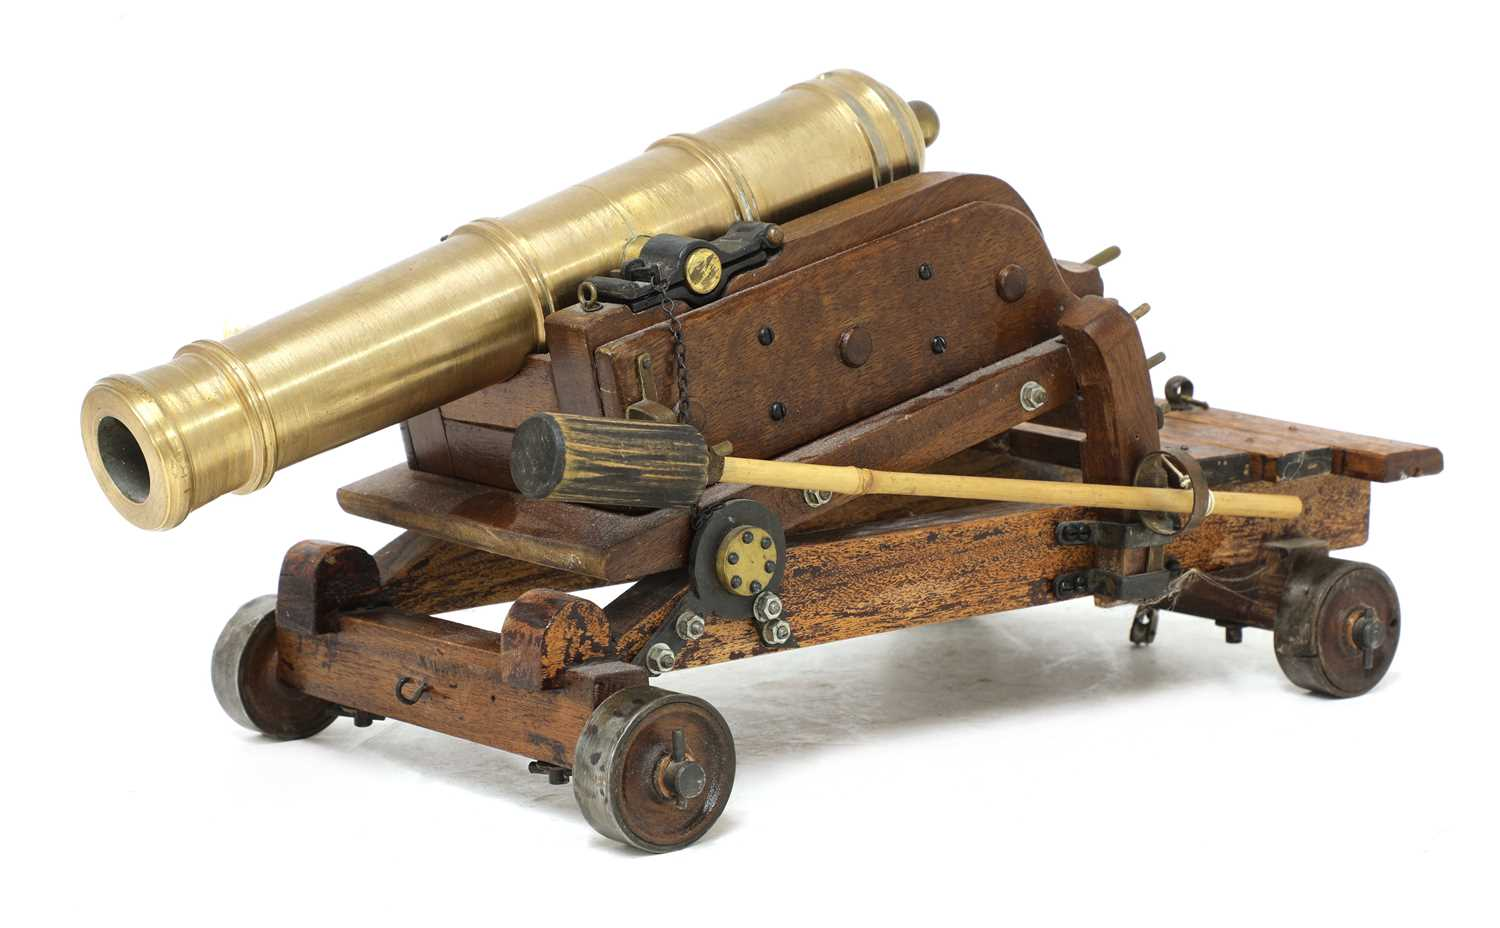 A model of a late 18th century 24lb Gibraltar cannon,